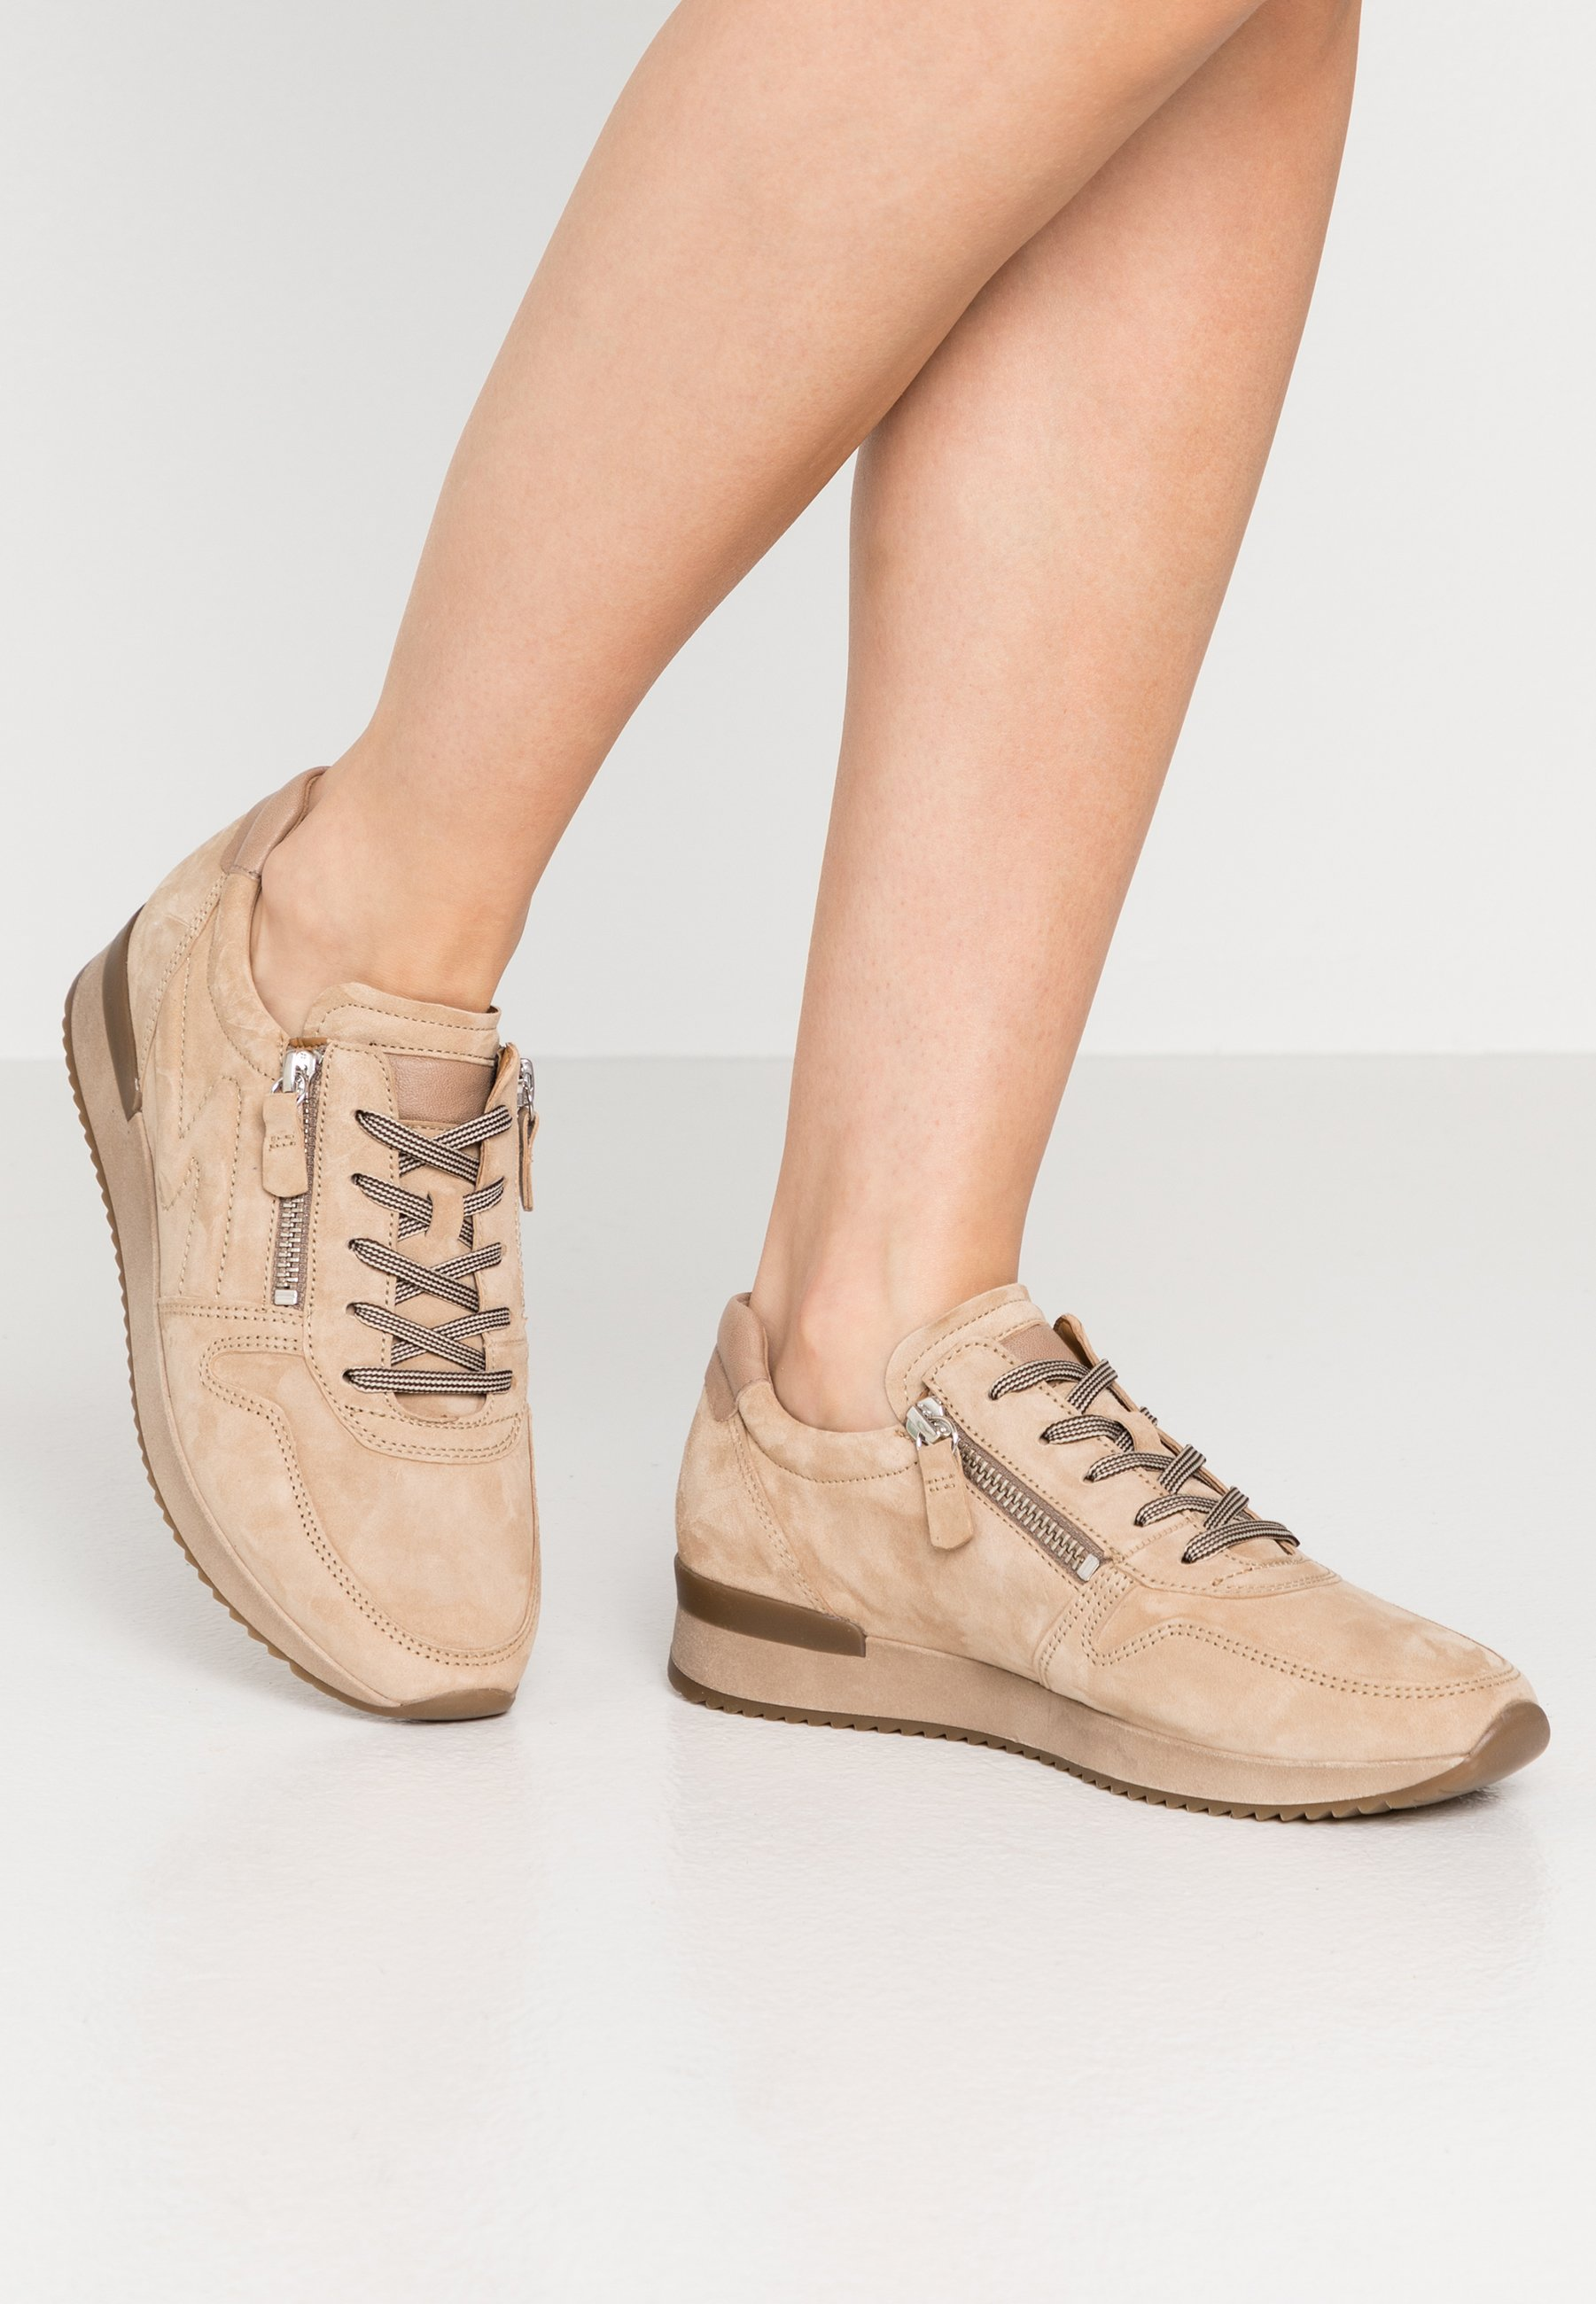 Clean And Classic Recommend Cheap Women's Shoes Gabor Trainers desert n9NwcMNVf 7PzFFQSpi